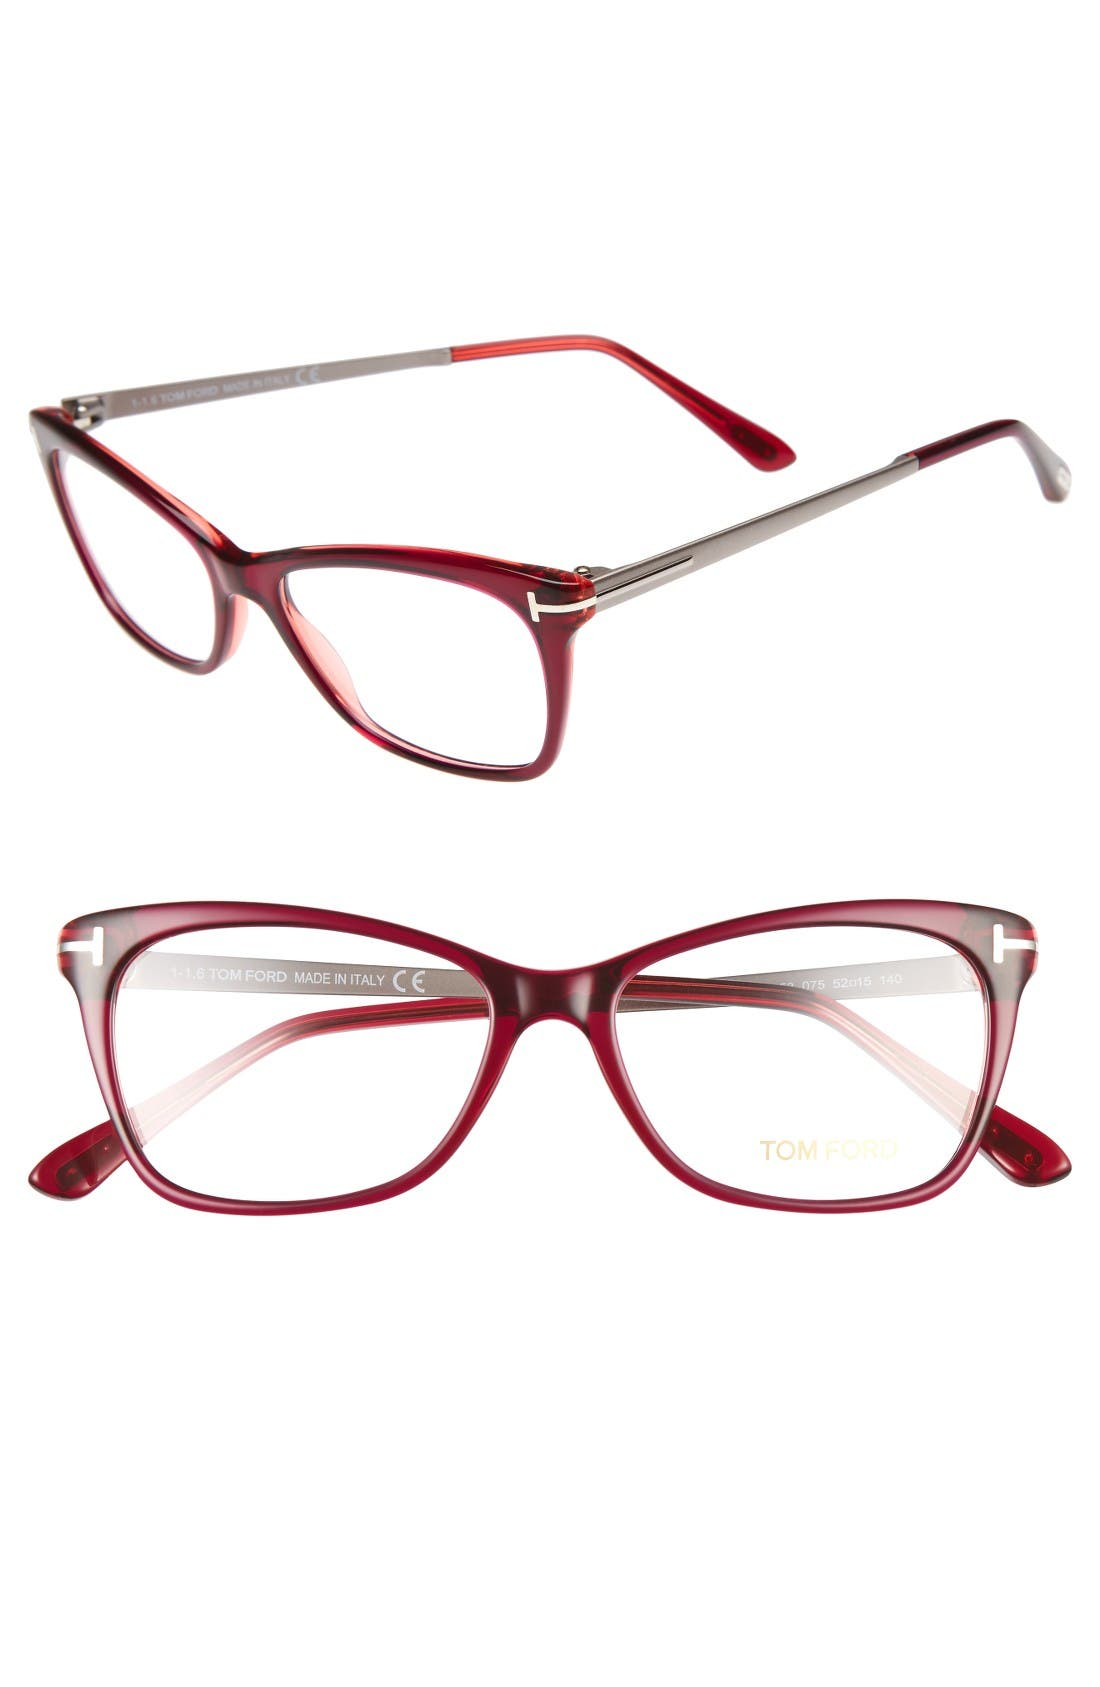 Tom Ford 52mm Cat Eye Optical Glasses